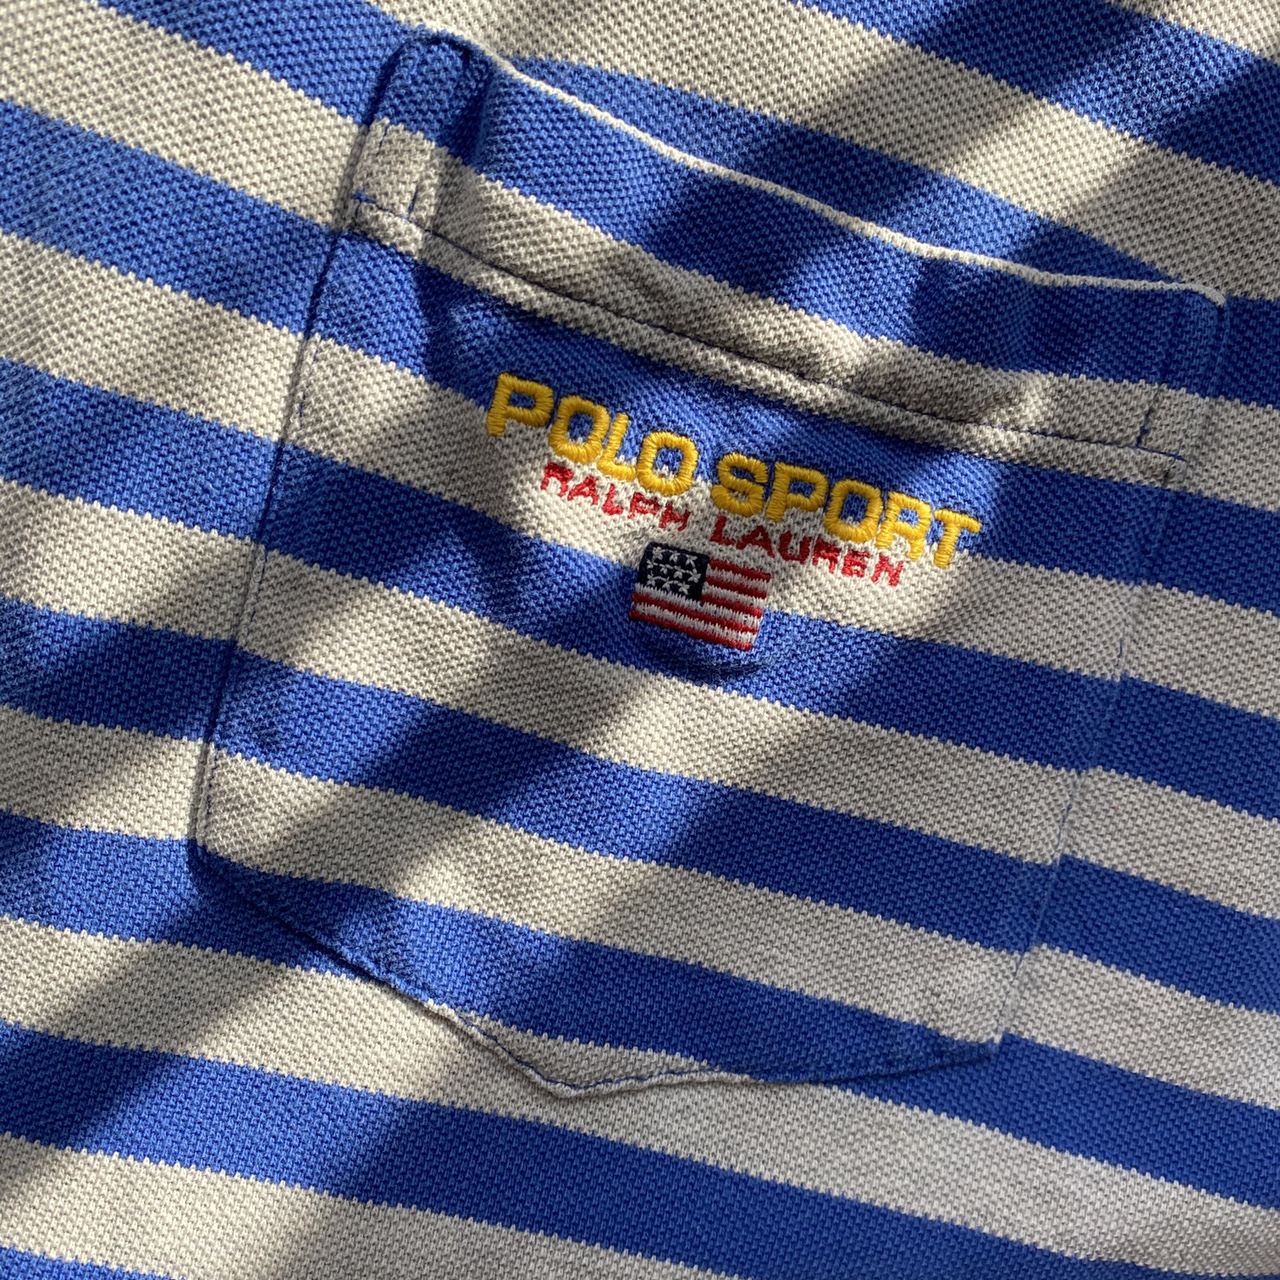 Product Image 2 - Ralph Lauren polo polo sport